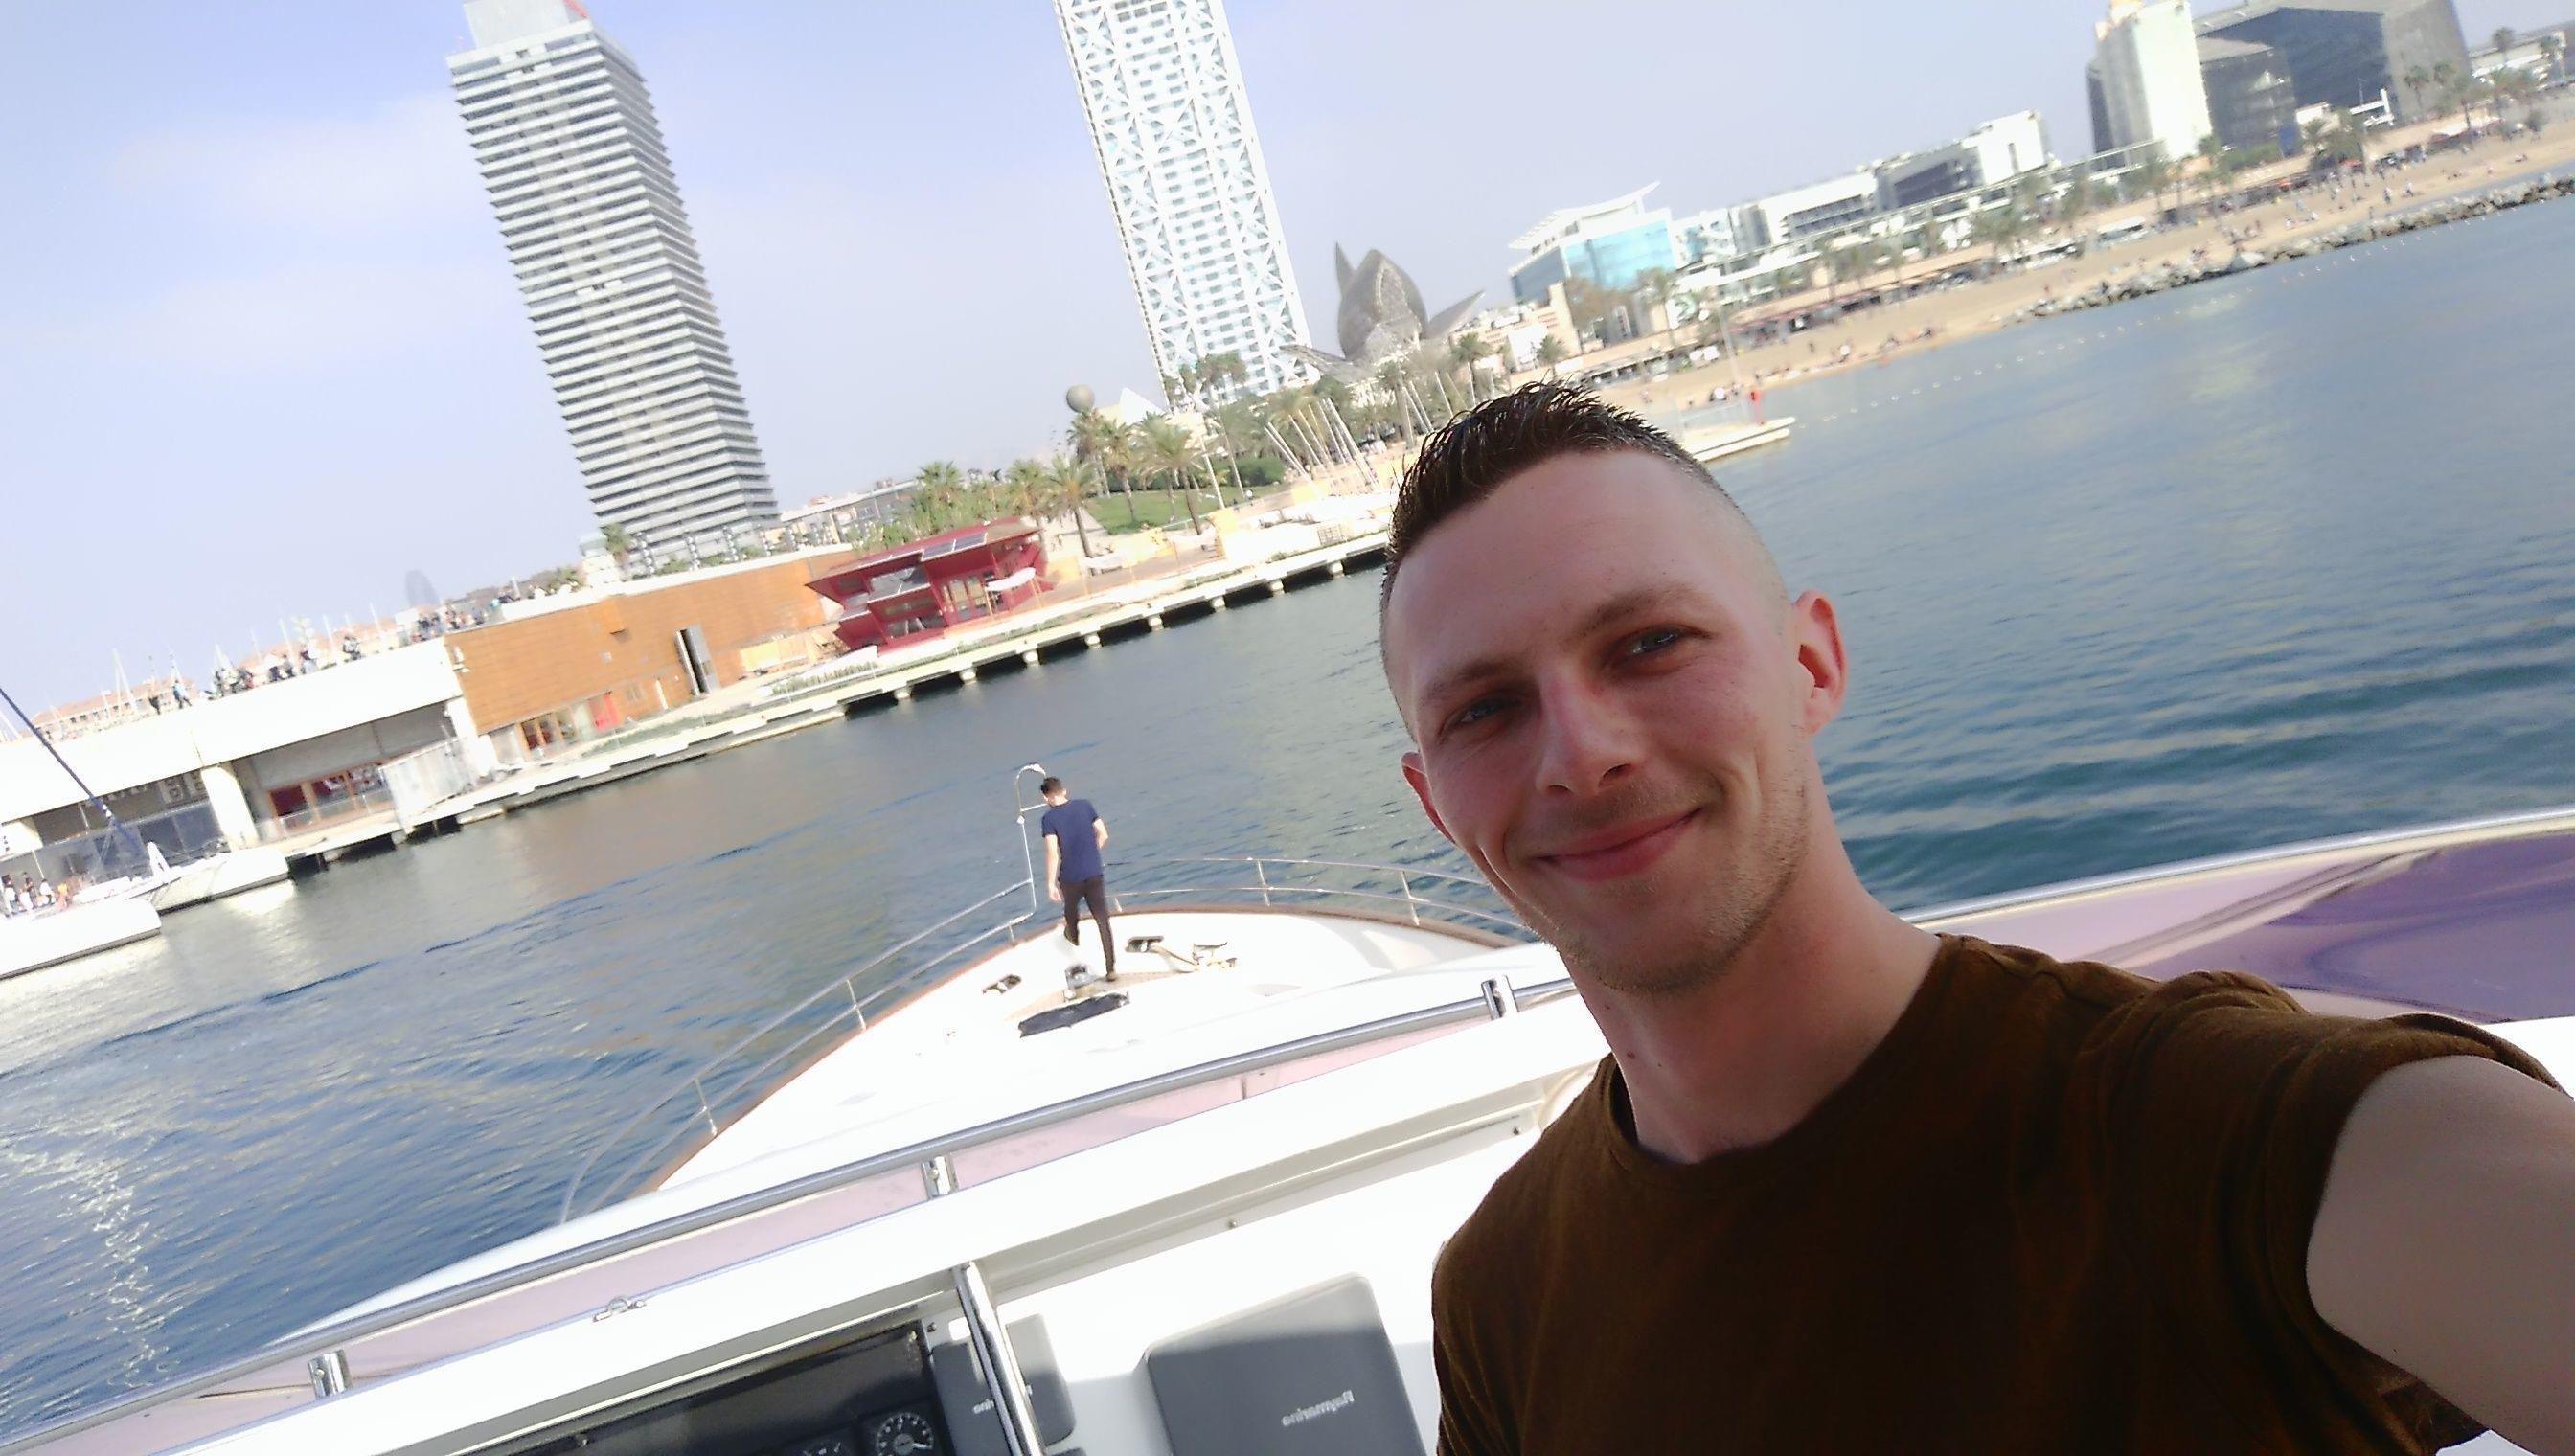 southend on sea single personals Hi my names paul, im 29 and live in southend on sea, essex, england i have my own house and a good job i'm a kind caring man looking forman seeking woman.